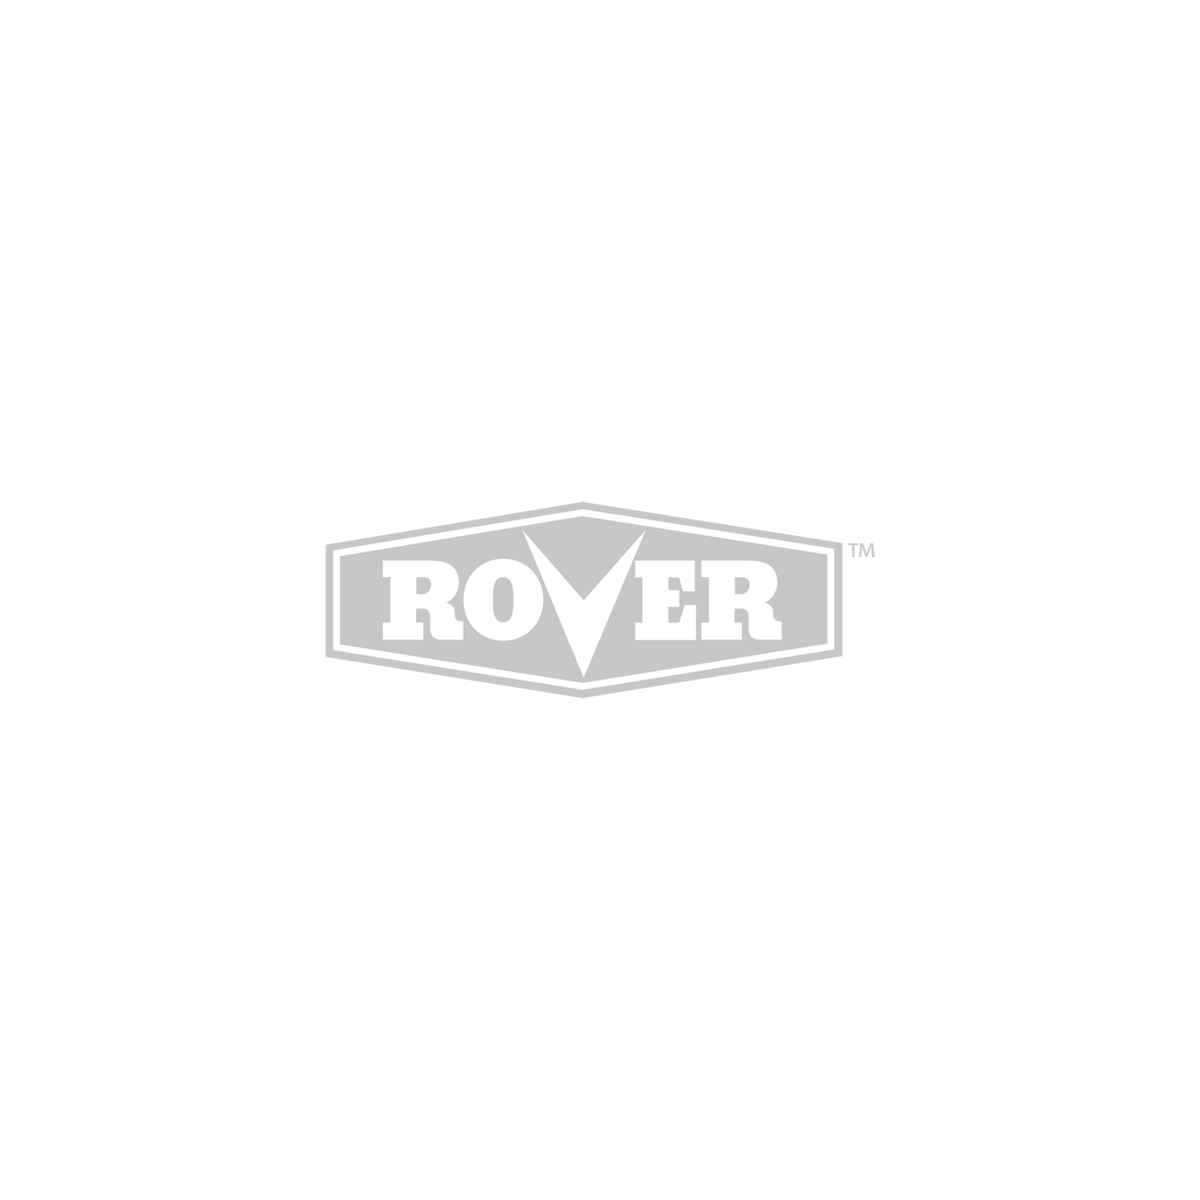 High back comfort seat with arm rests and dial suspension provides excellent comfort for big mowing jobs